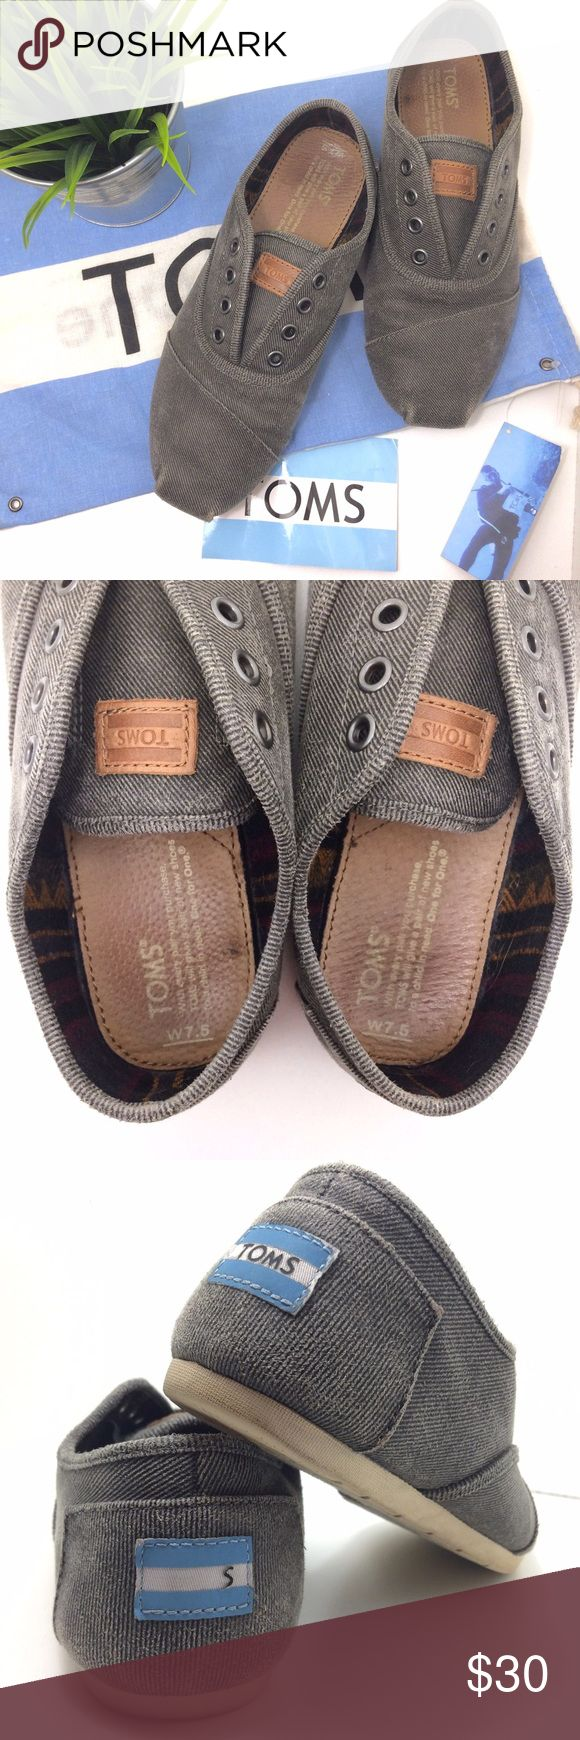 TOMS Cordones Slip-on • Gray Flats • Sneaker Slide Simplicity is always in season. The womens TOMS Cordones Shoes are good to go with or without laces on your around-town explorations. A casual shoe fit for both day and night. With the classic TOMS toe-stitch and suede insole cushioned with rubber, this Cordone slips on and fits snug with hidden elastic straps. No laces necessary! ⭐️Includes TOMS flag/bag  sticker! TOMS Size 7.5. Linen upper. Latex arch support. Cushioned leather insol...